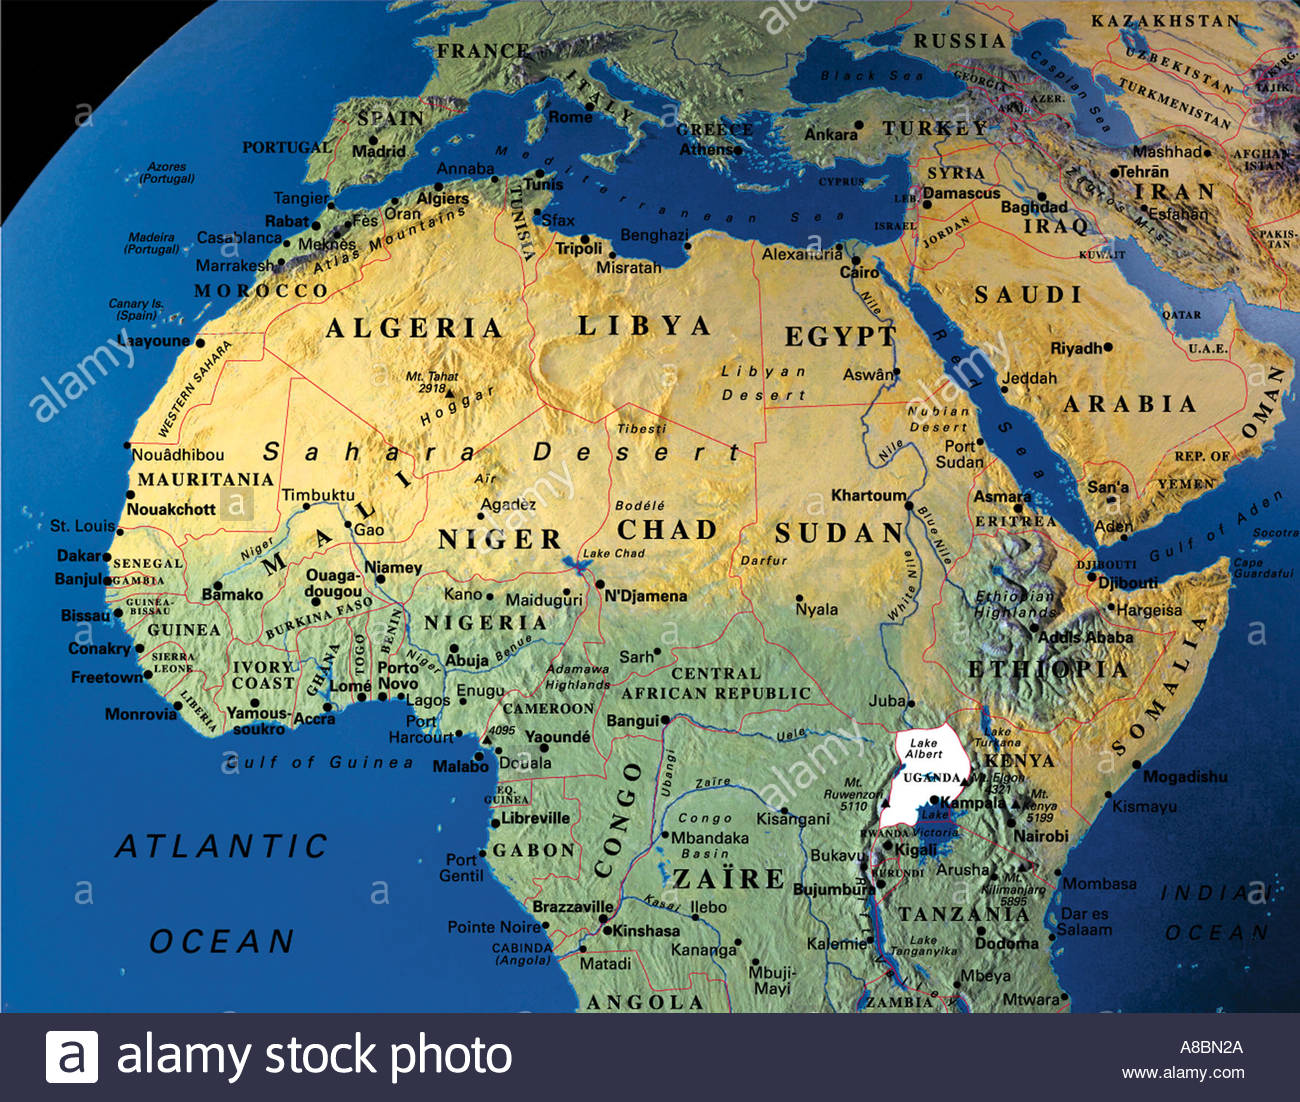 globe map maps Africa Middle East Stock Photo: 3934505 - Alamy